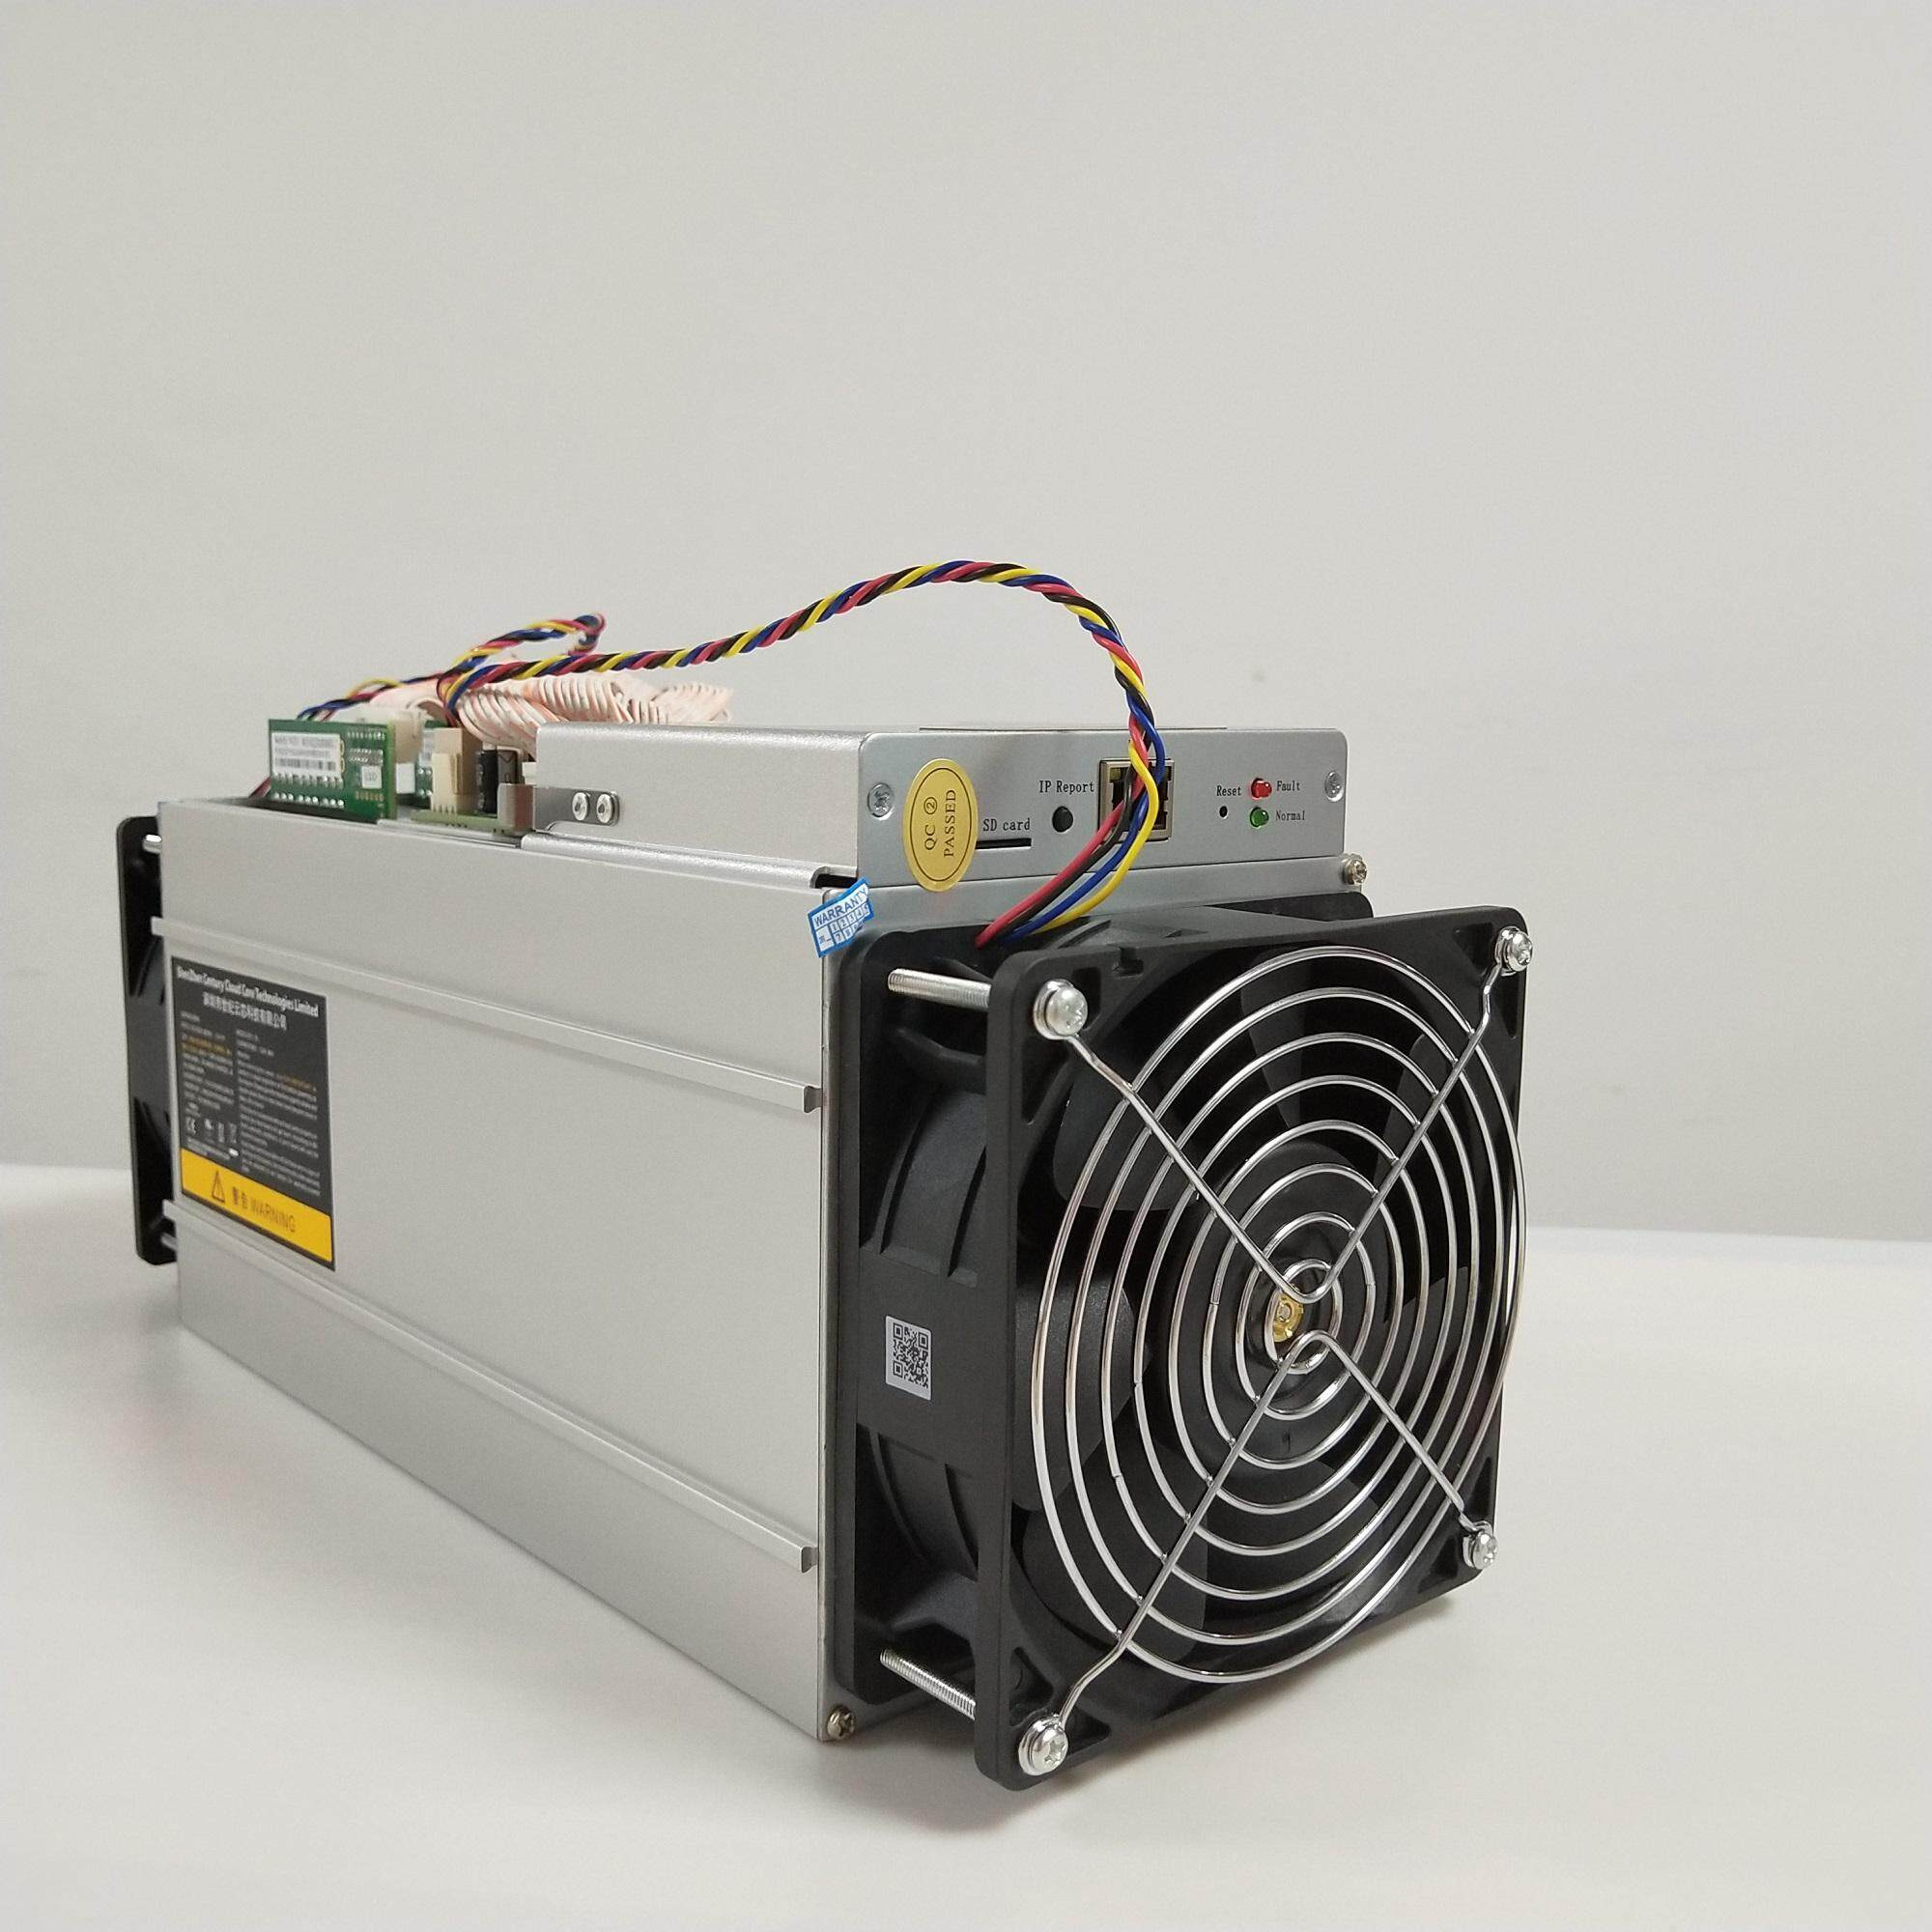 Brand New ASIC Bitcoin Miner BITMAIN Antminer S9J 14 5T 1330W without psu  better than WhatsMiner M3 Antminer S9i S9j T1 T2T S17